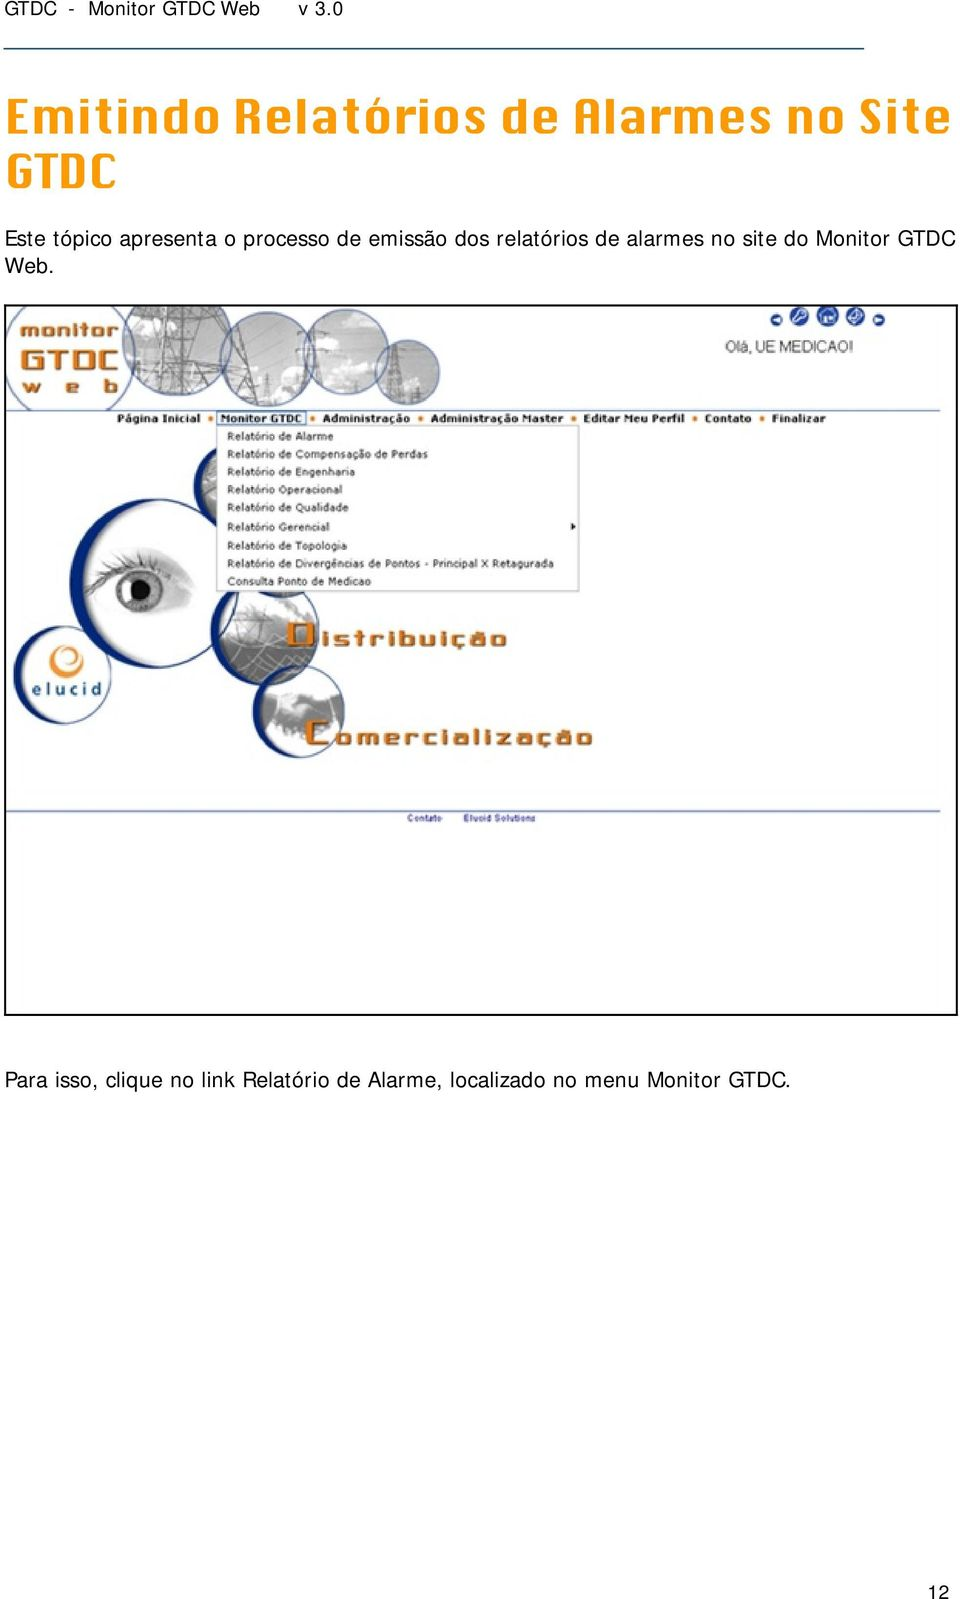 alarmes no site do Monitor GTDC Web.